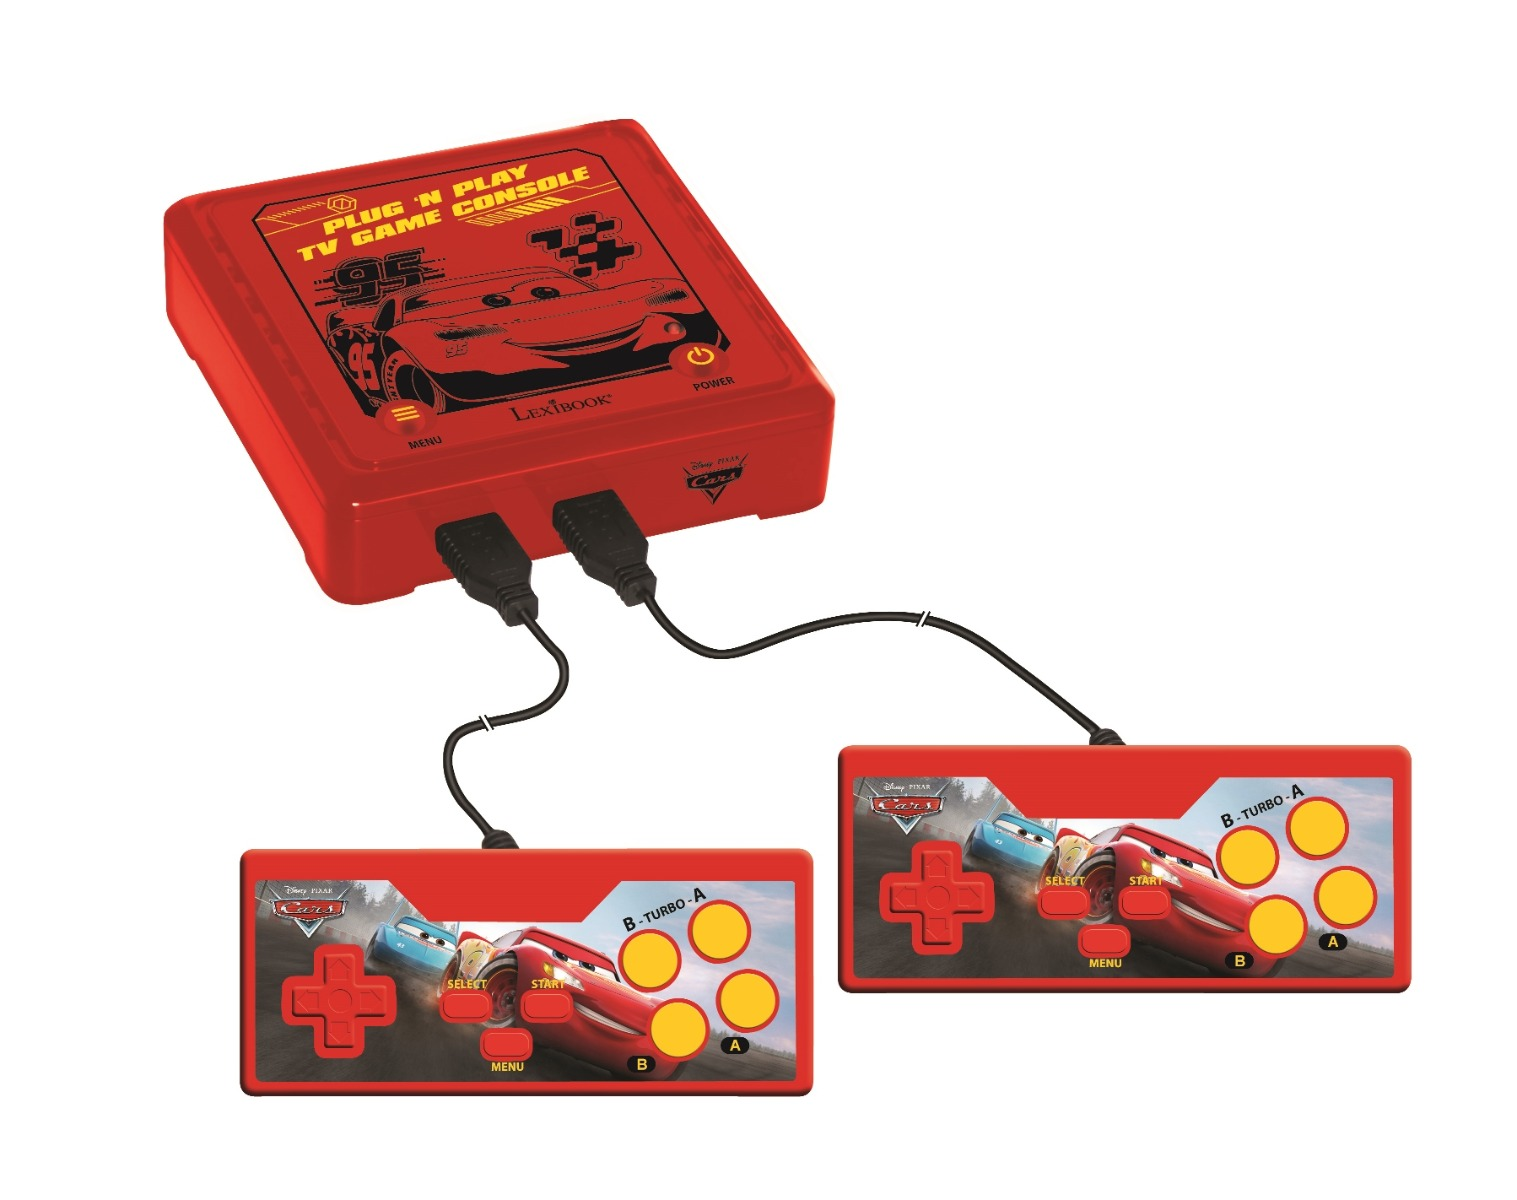 Consola TV Plug N'Play Disney Cars, 300 jocuri